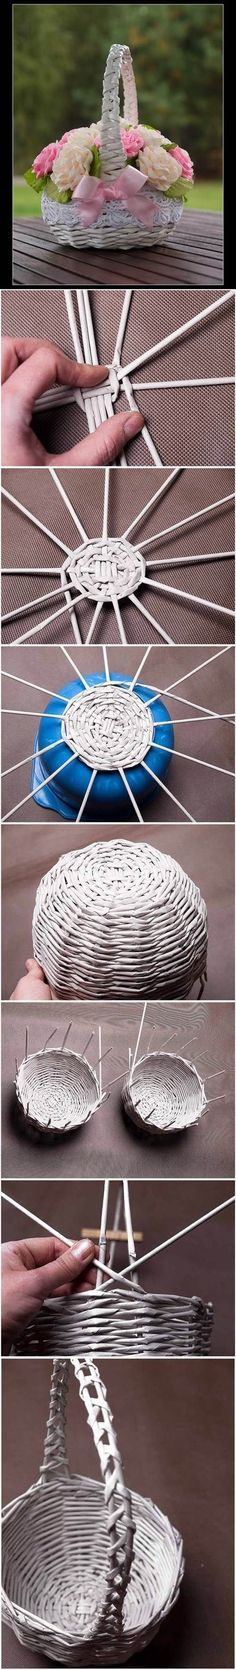 DIY Newspaper Tubes Weaving Basket | iCreativeIdeas.com Follow Us on Facebook --> https://www.facebook.com/icreativeideas: